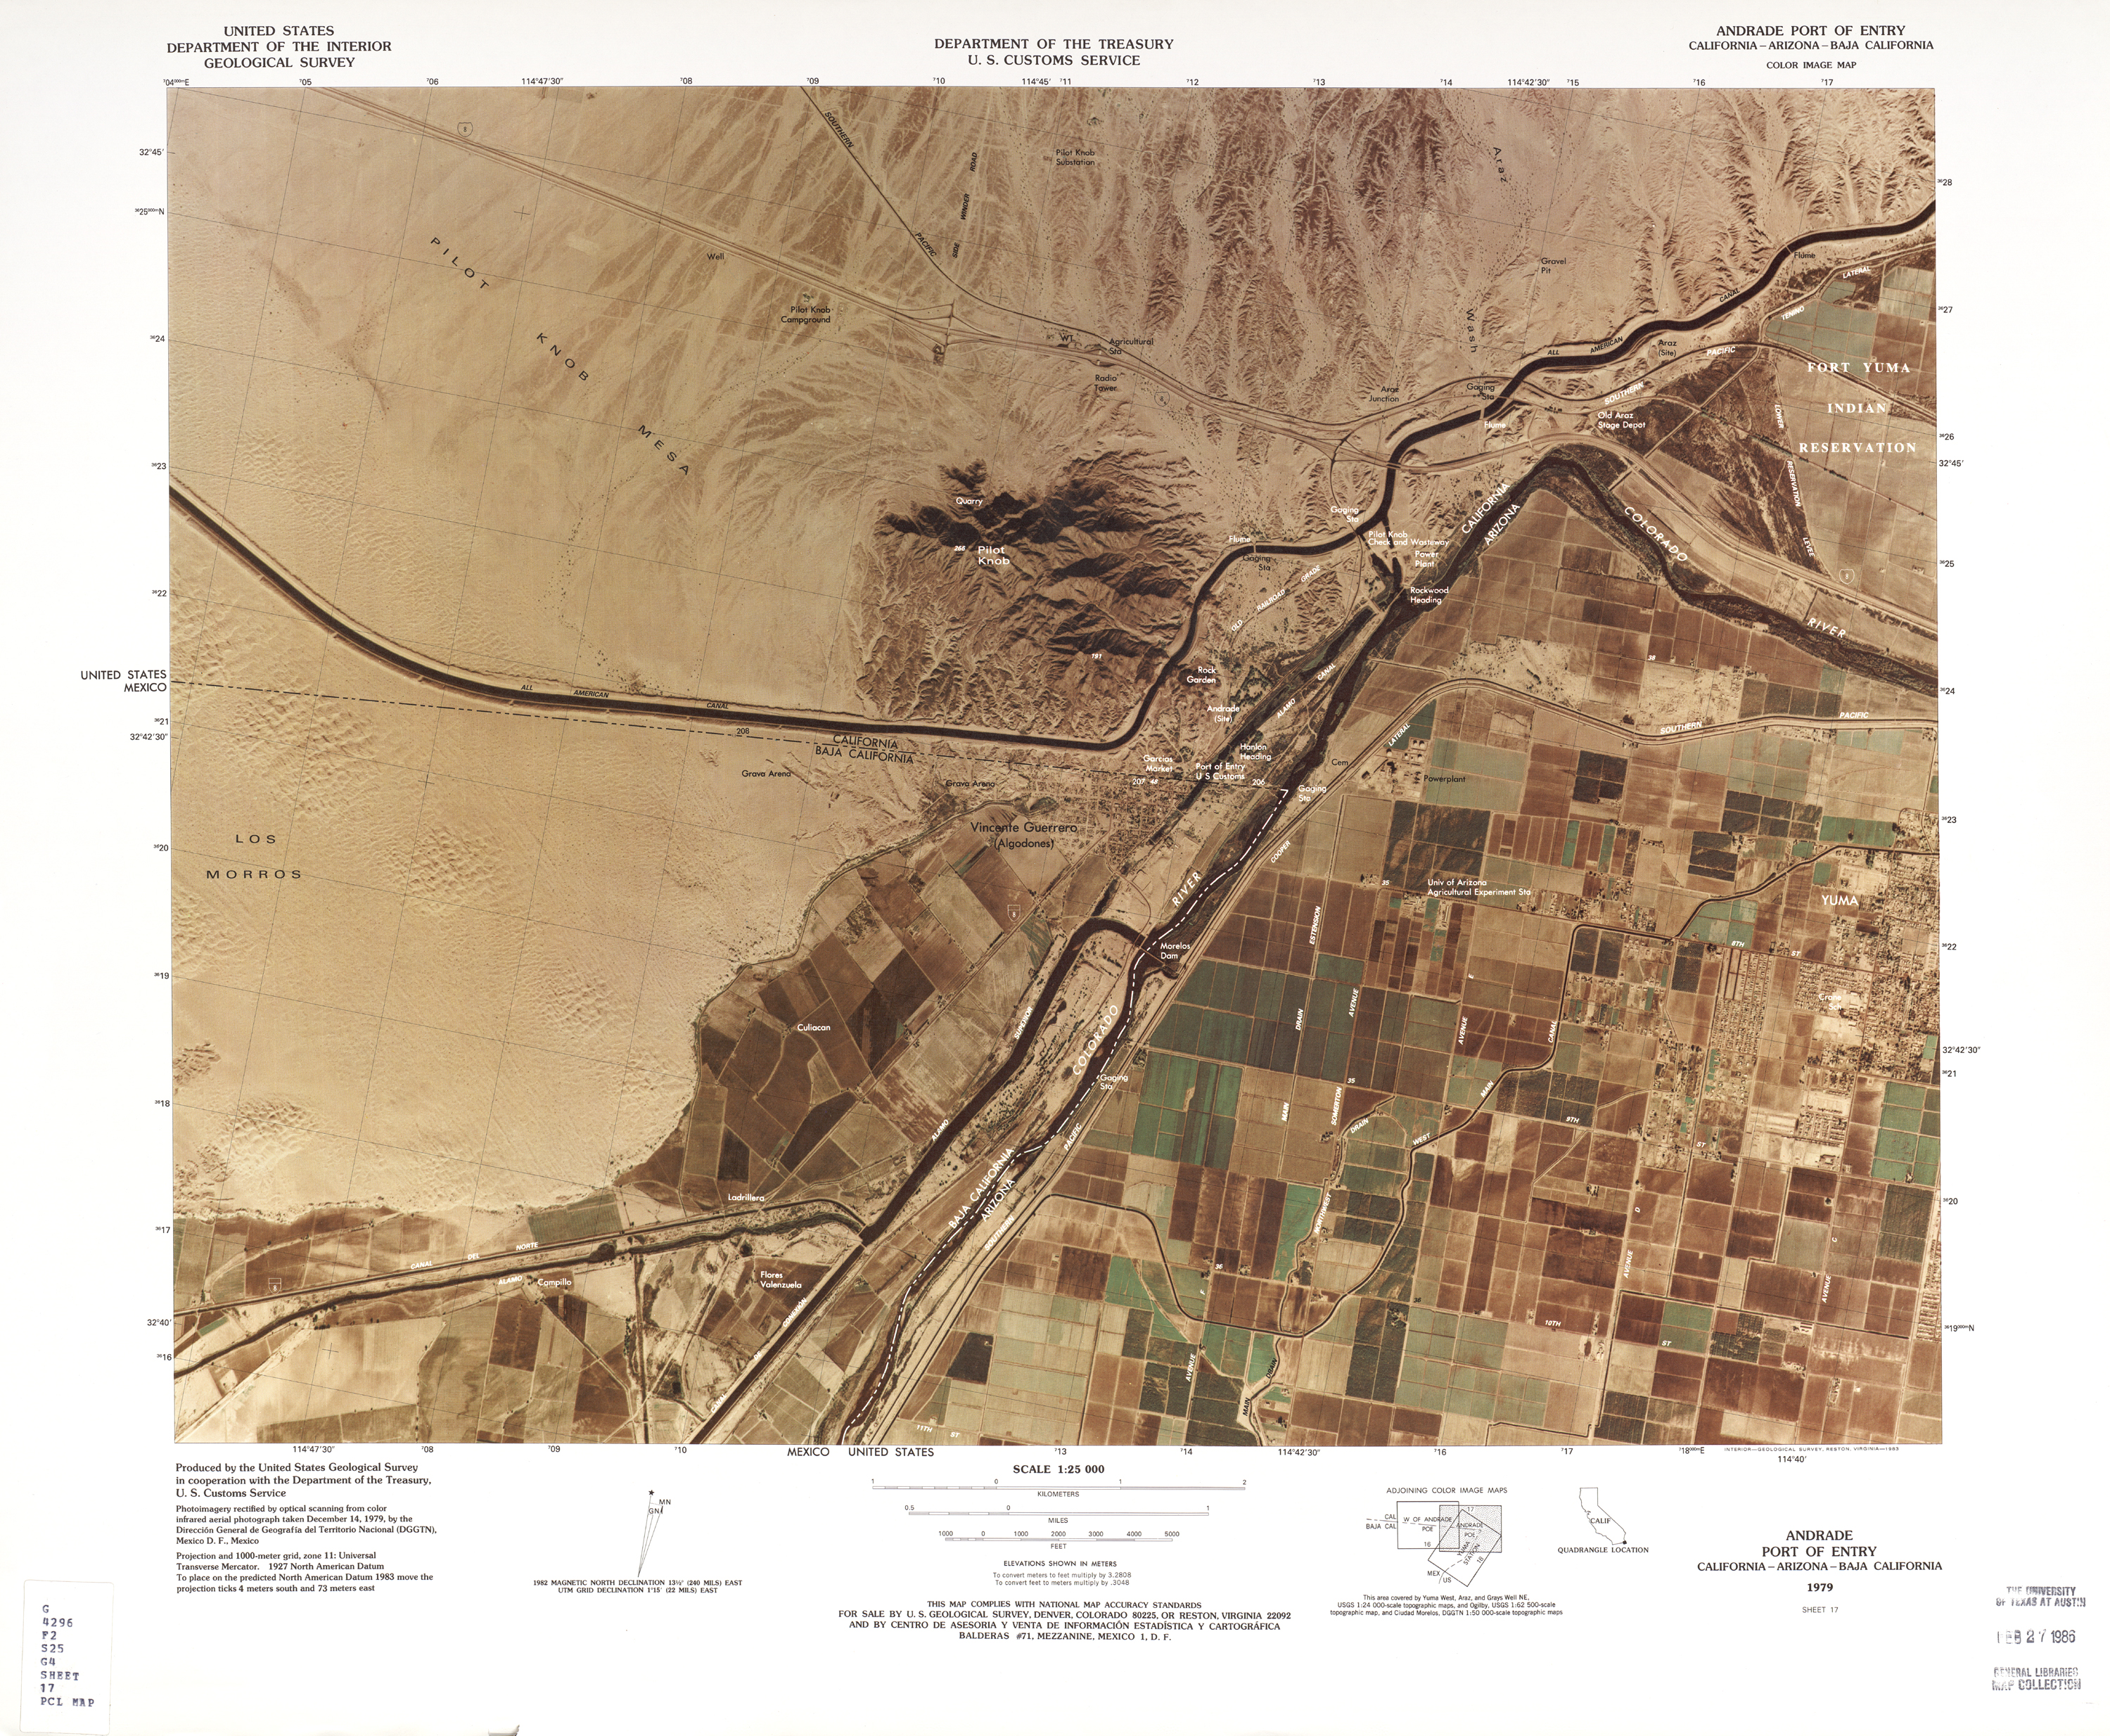 Mexico United States Border PerryCastañeda Map Collection UT - Us ports map